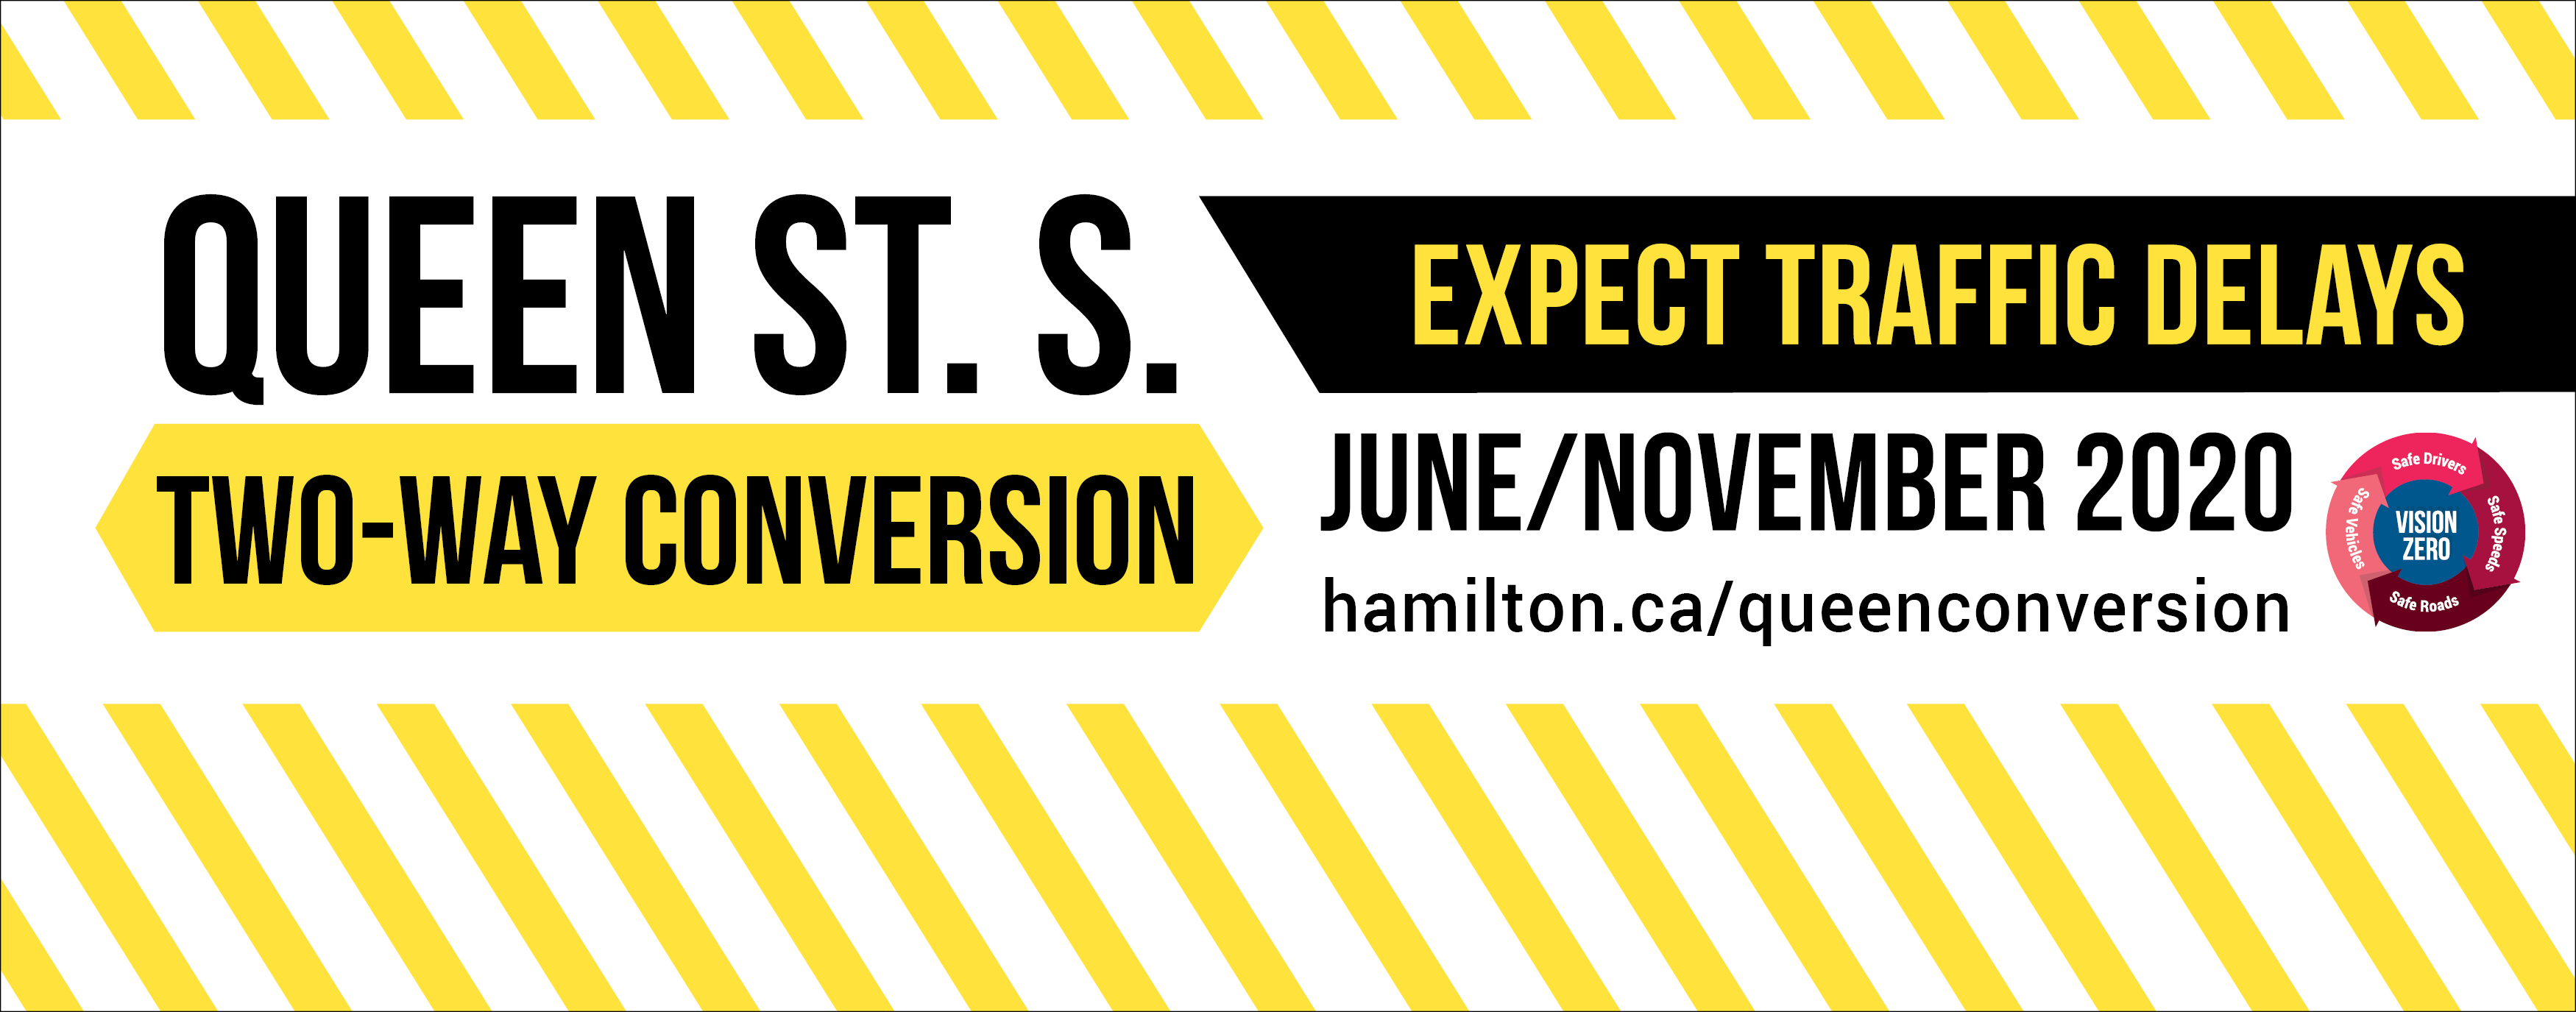 Slider for Queen Street South 2-way Conversion from June to November 2020